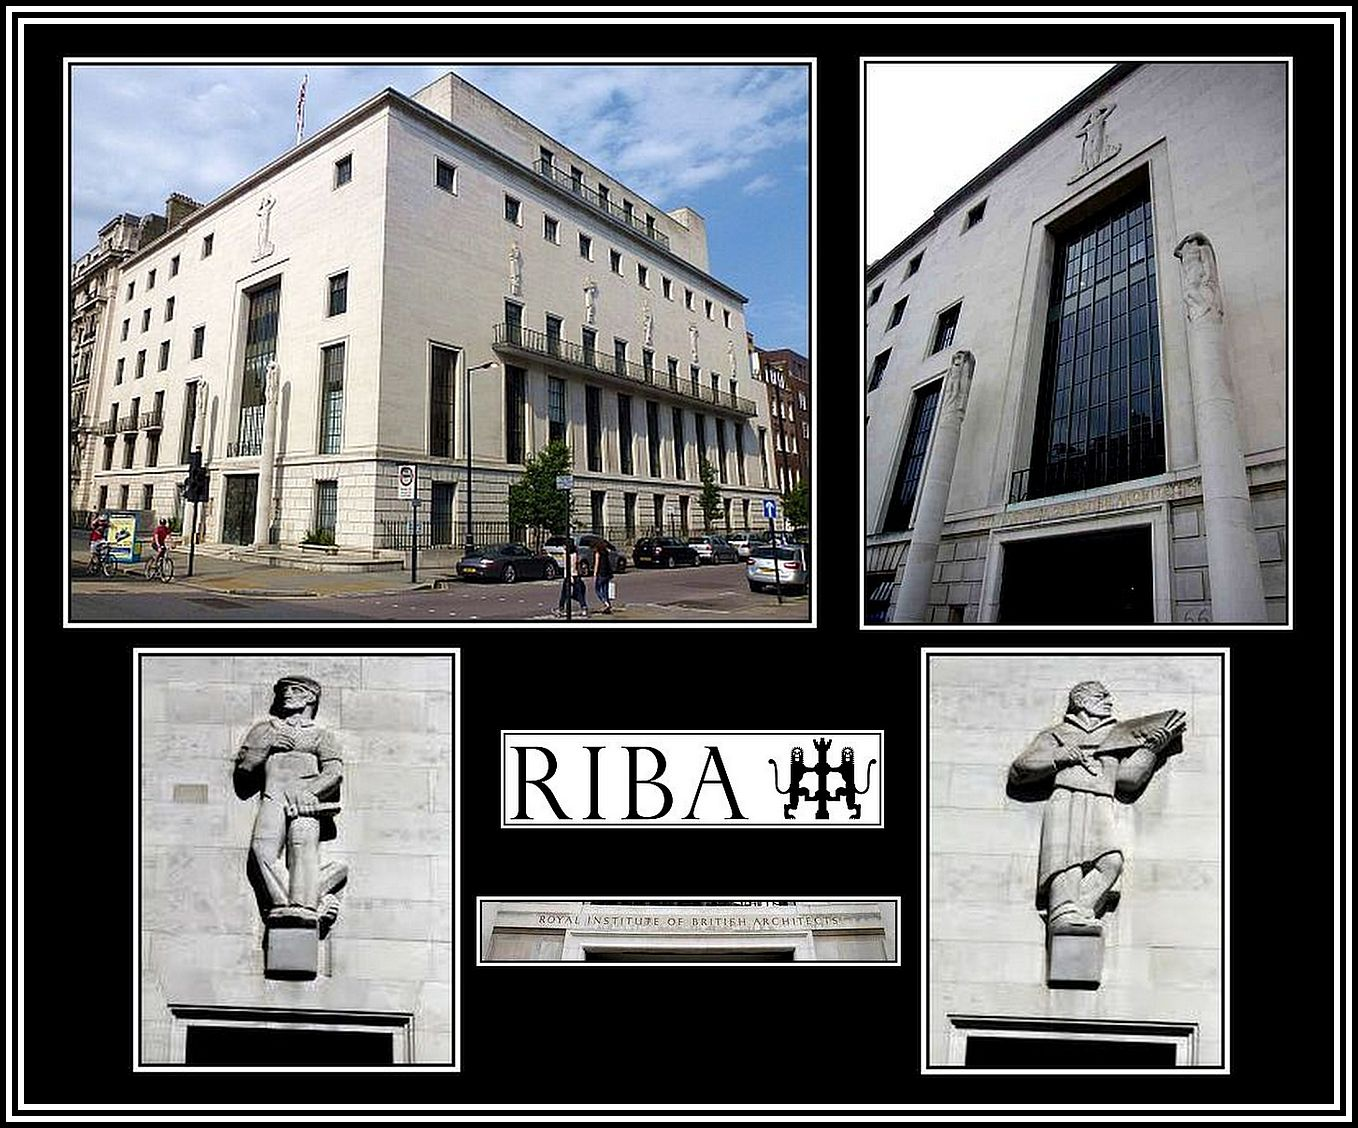 Royal Institute of British Architects Collage